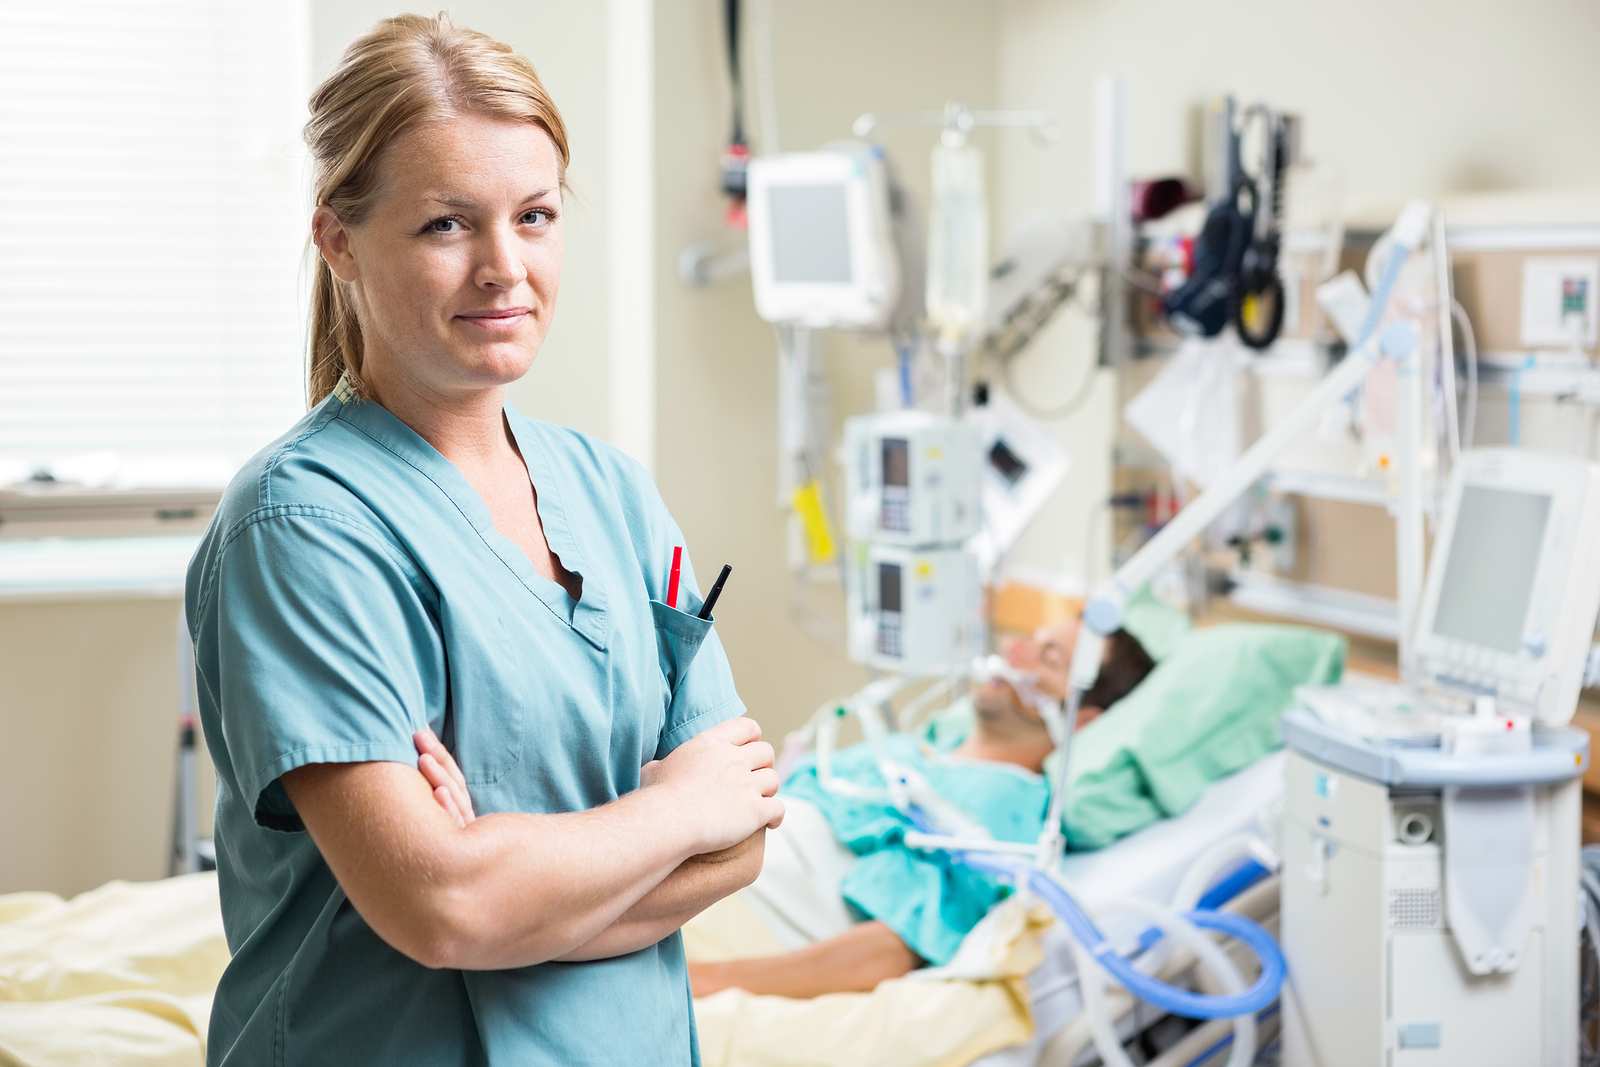 bigstock-Portrait-of-confident-nurse-st-52314022.jpg